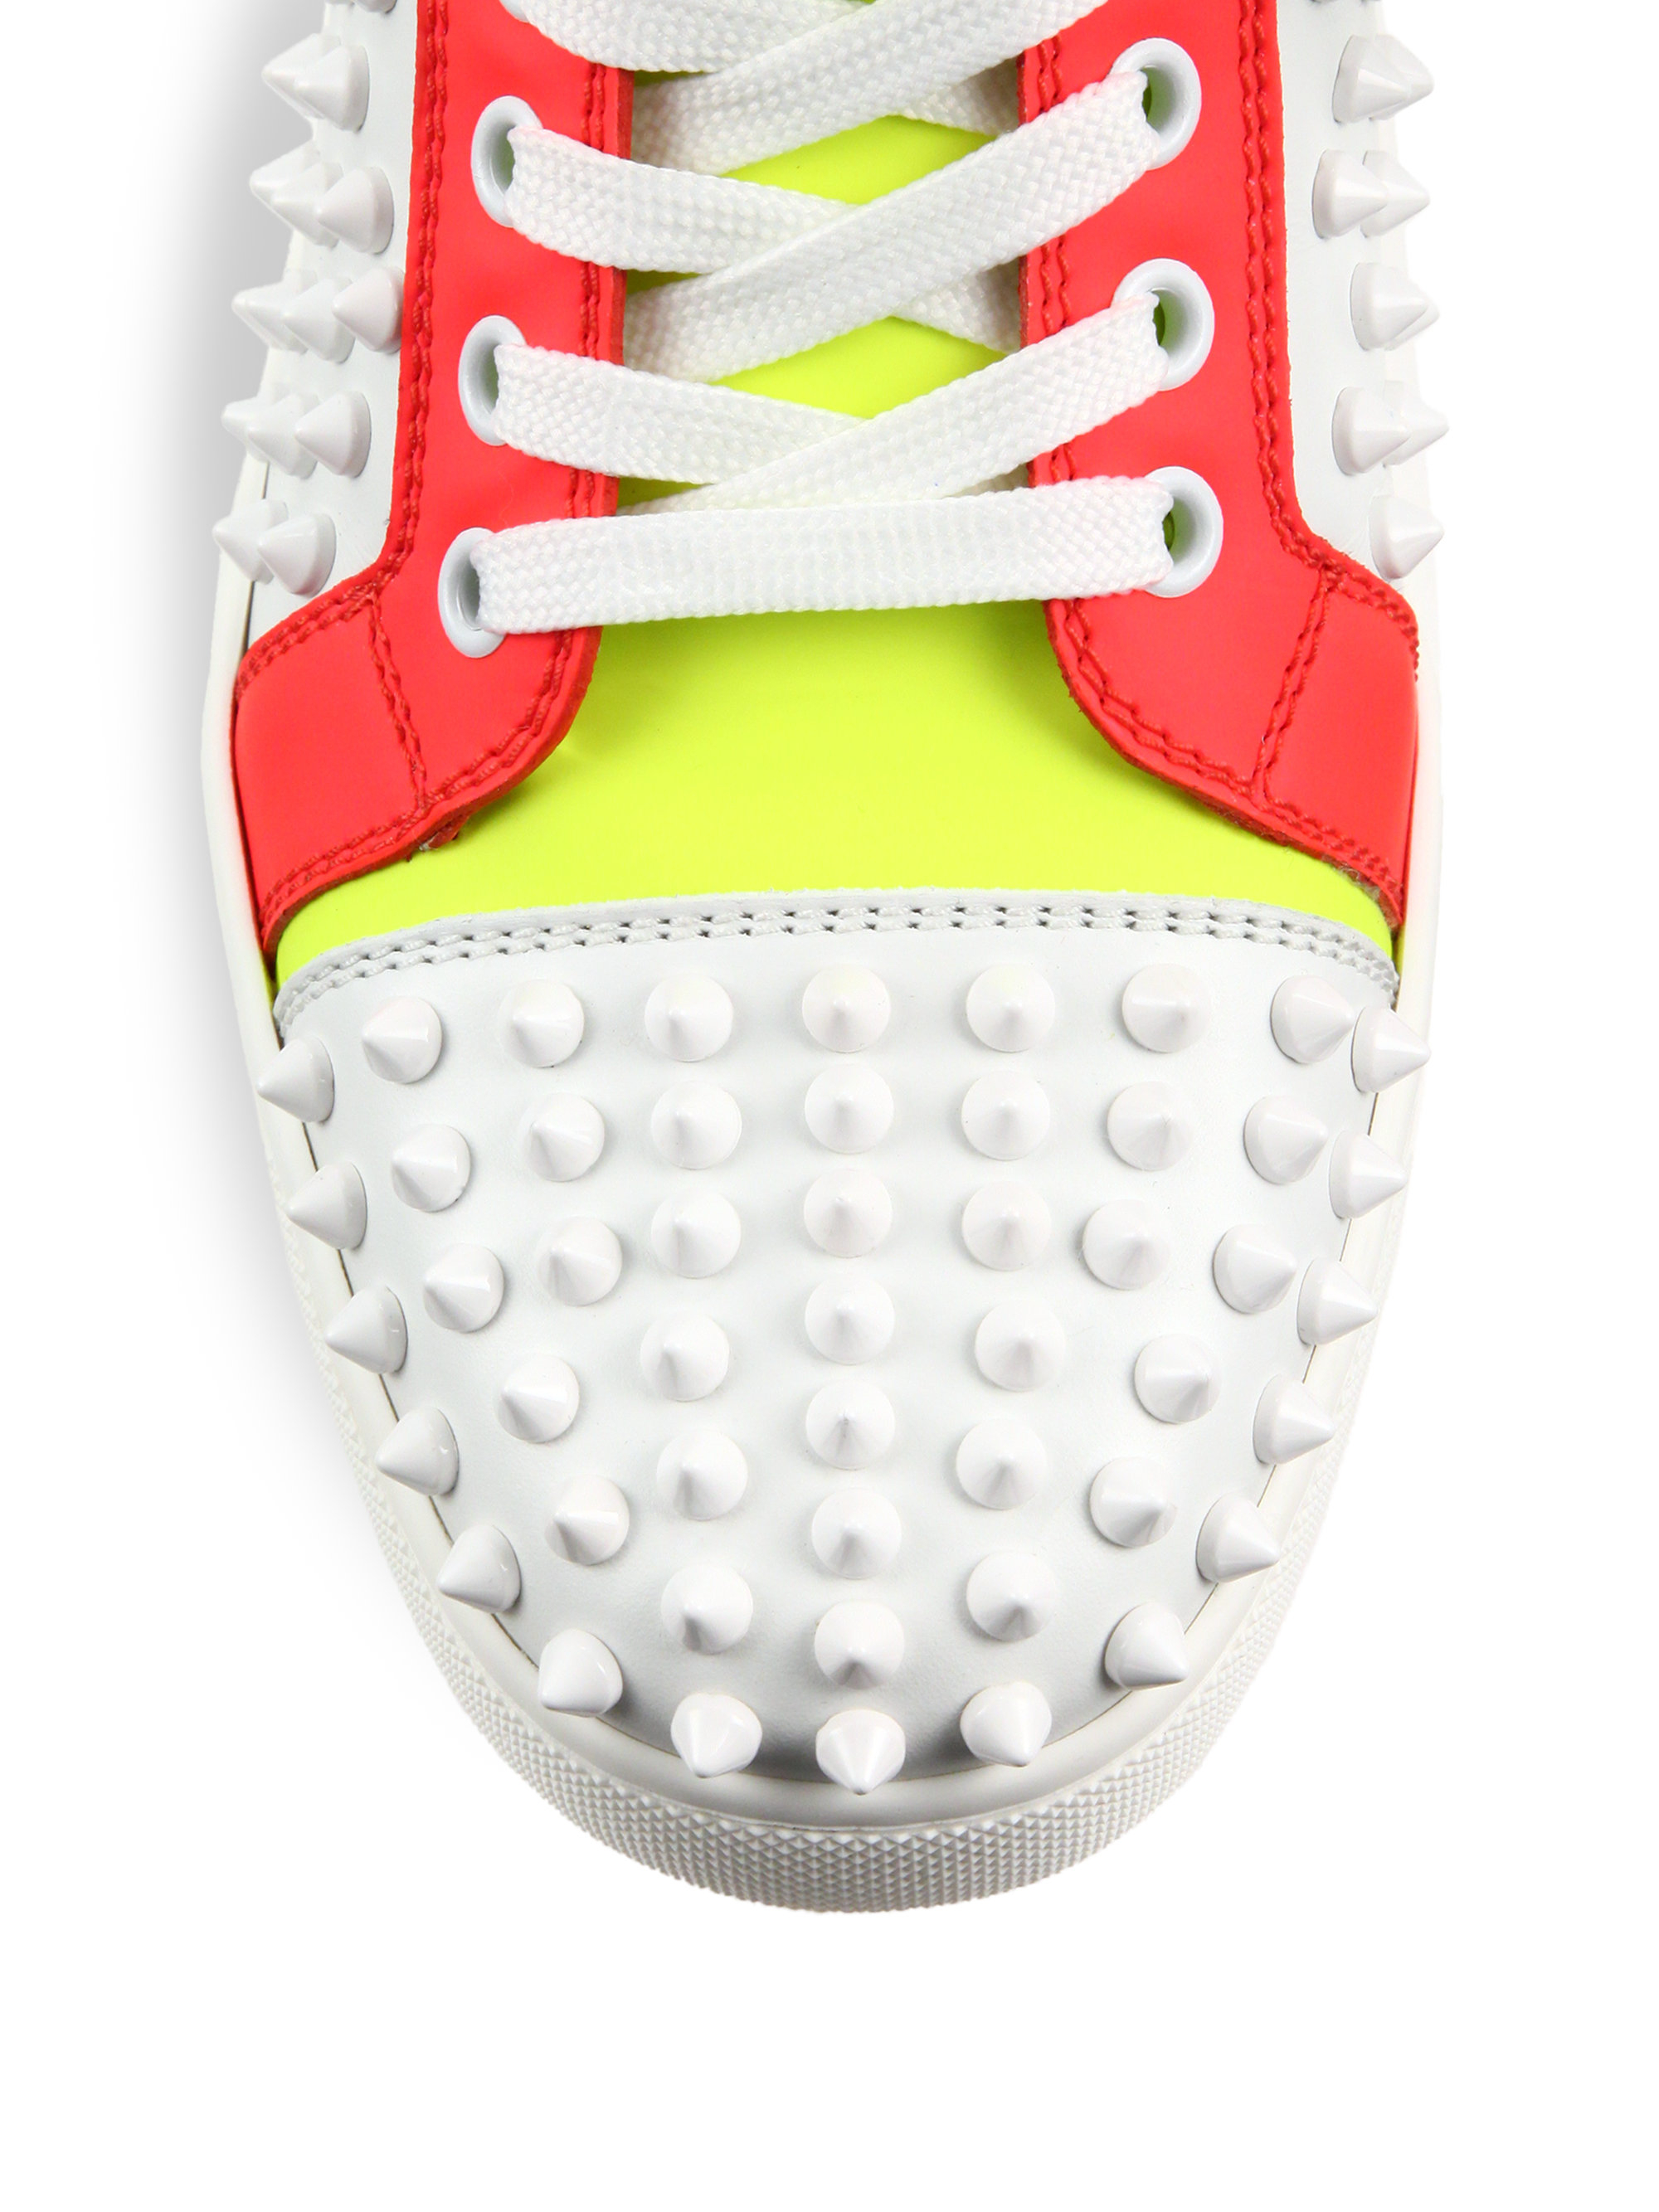 separation shoes 5a4af 6bd0e Women's White Louis Woman Studded Colorblock Leather Sneakers